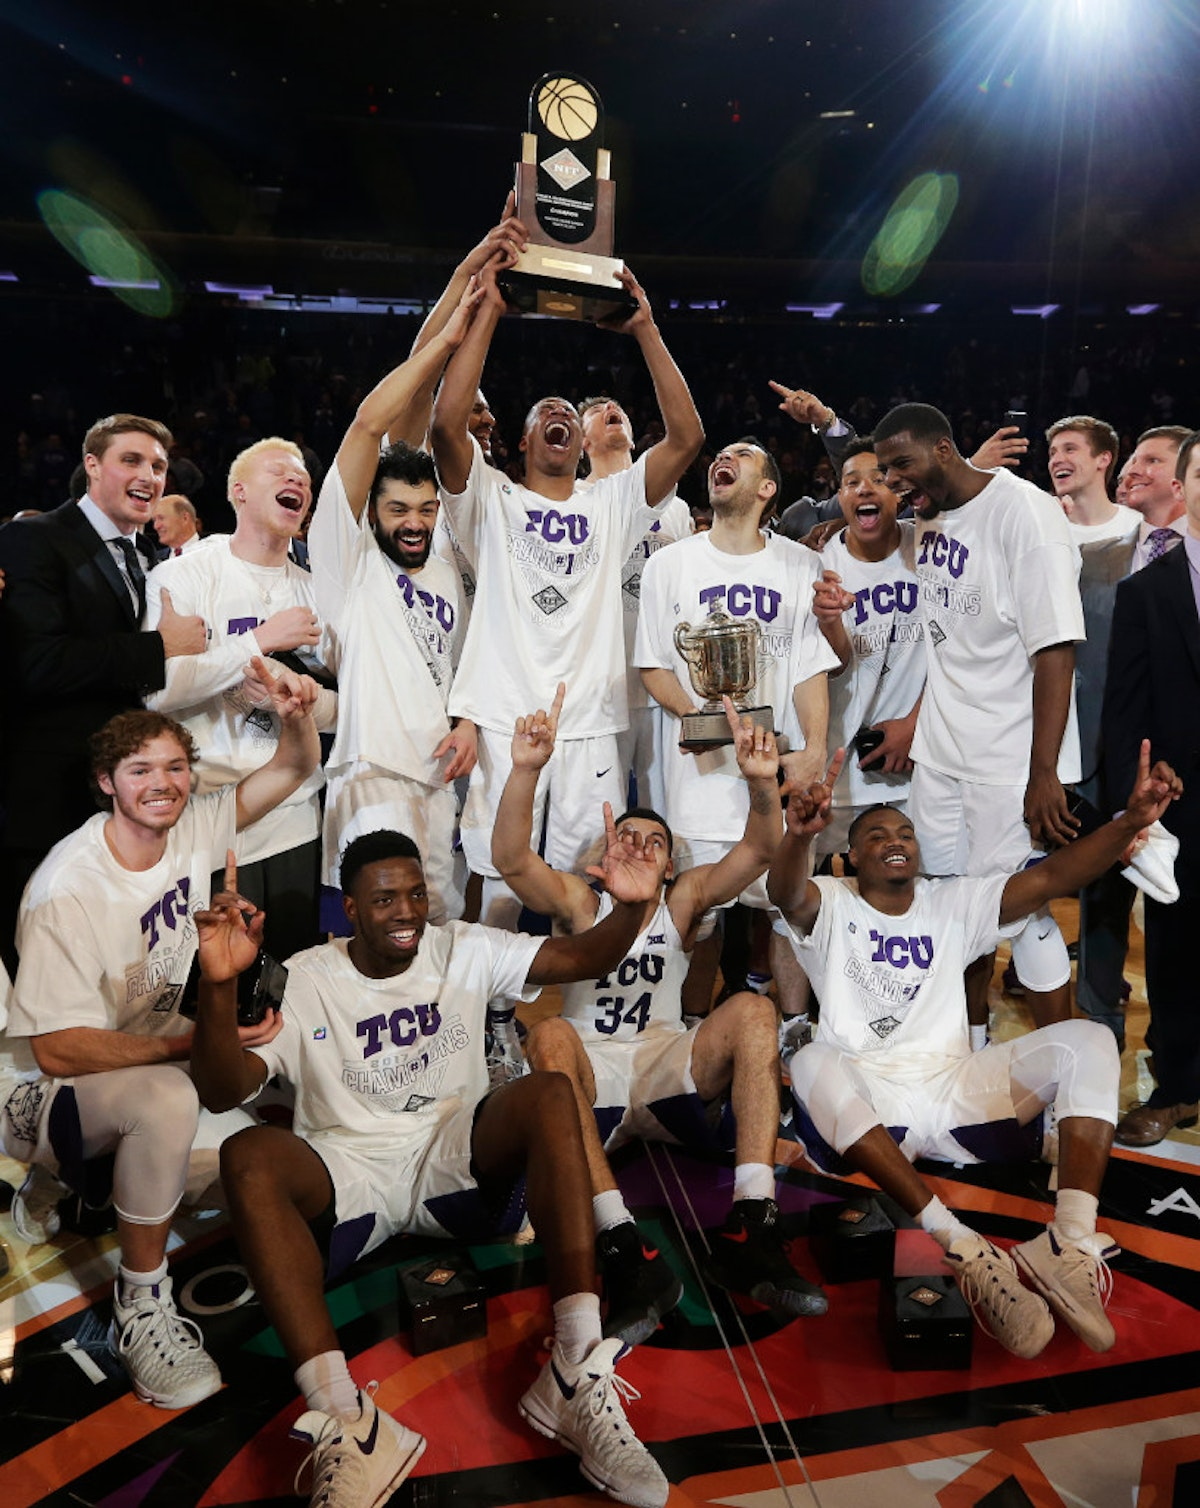 College Sports: With dominating NIT title win, TCU basketball proving it can match school's football, baseball success